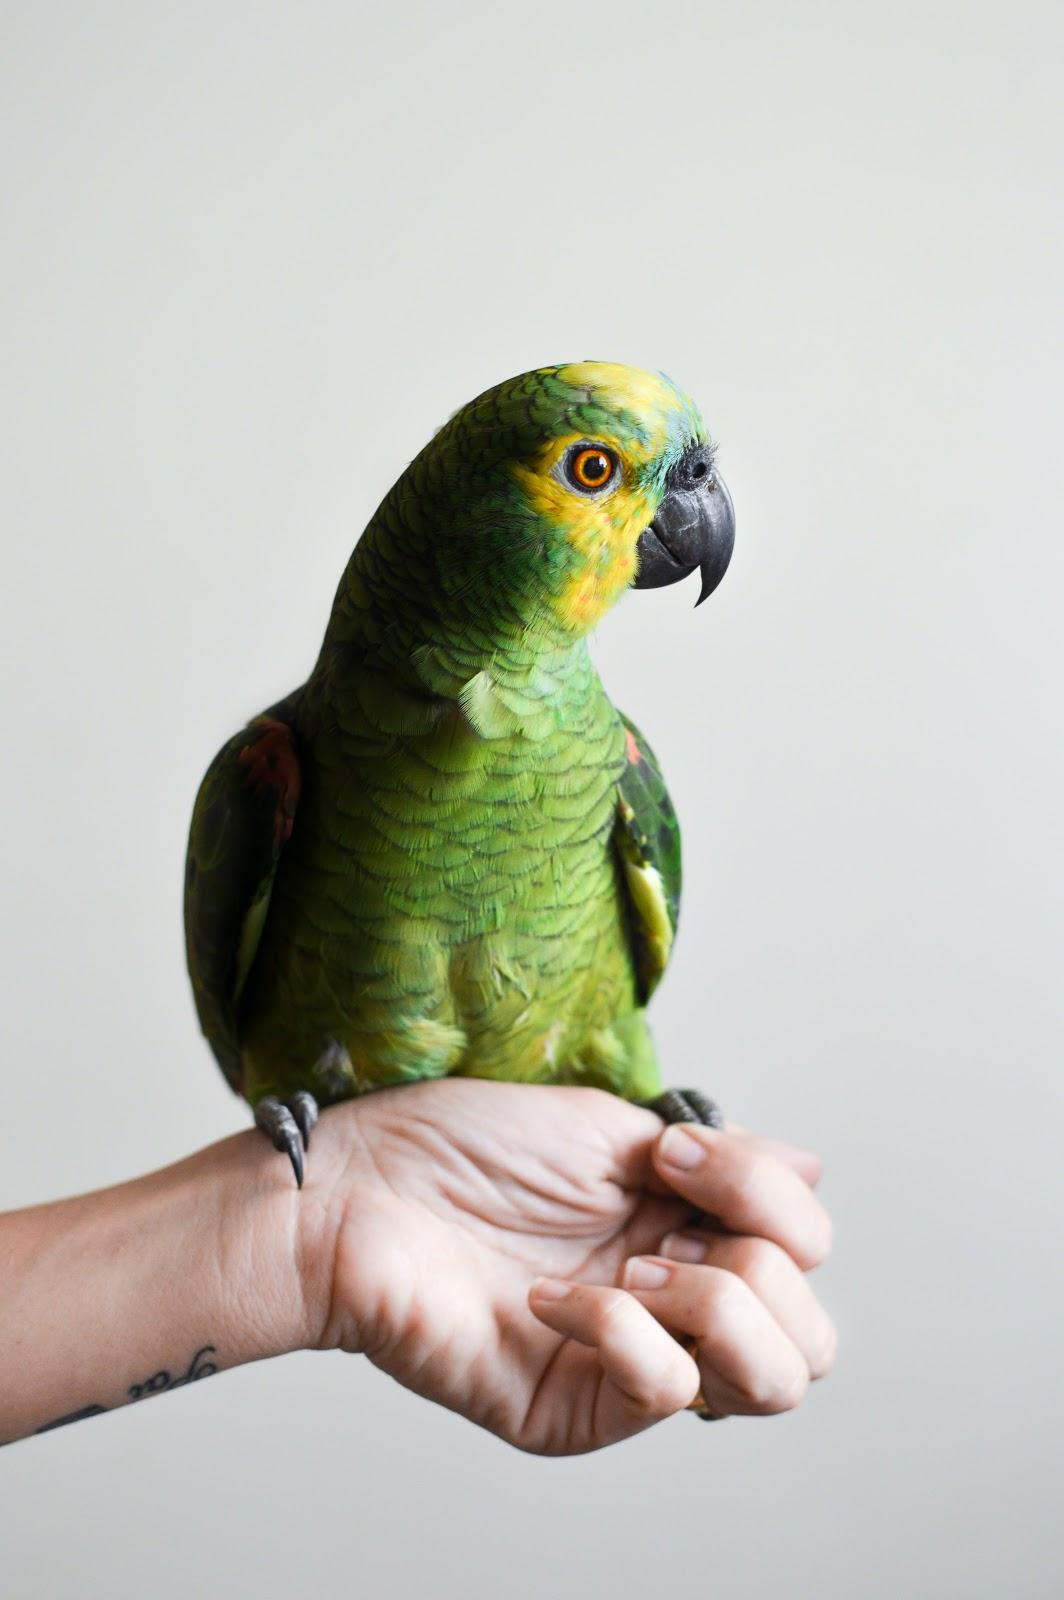 a parrot sitting on a hand